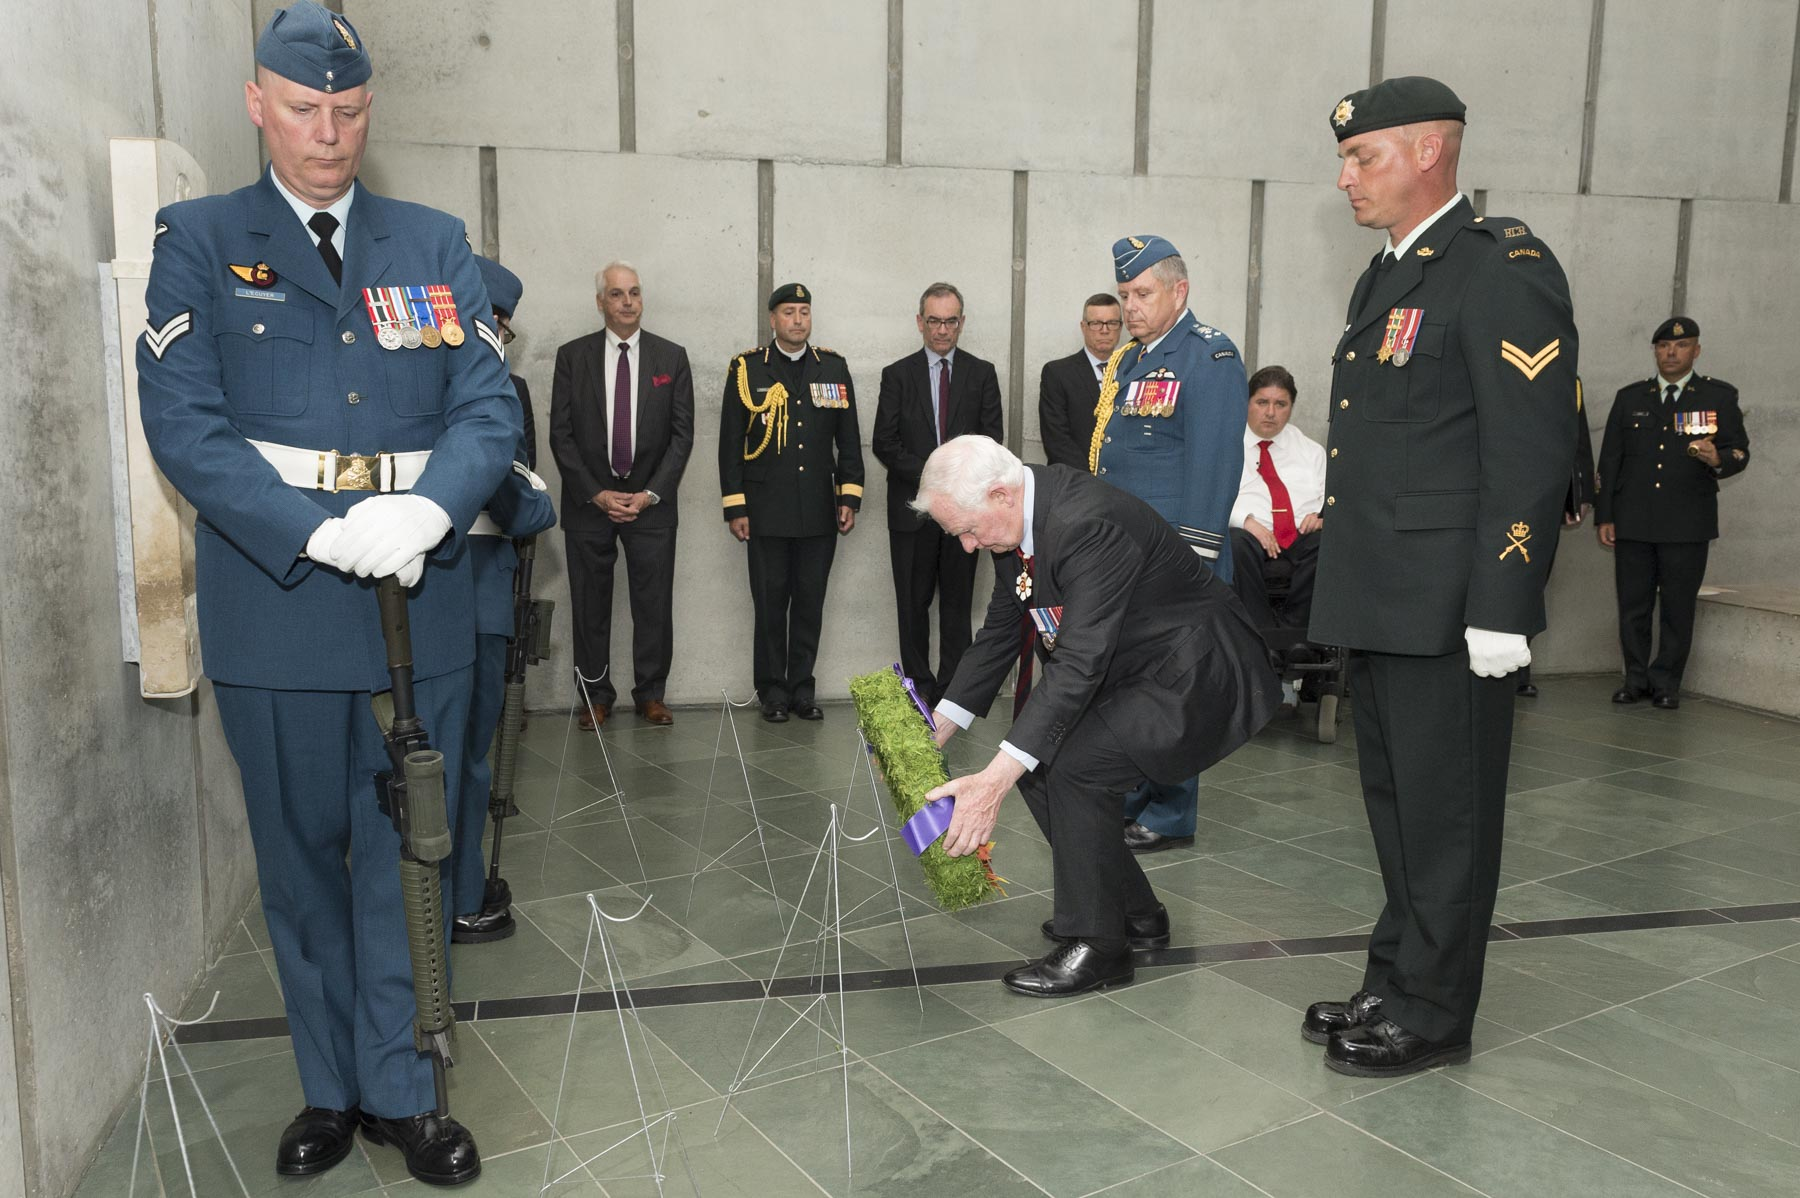 On this occasion, the Governor General, along with CWGC member government representatives, laid a wreath in Memorial Hall.